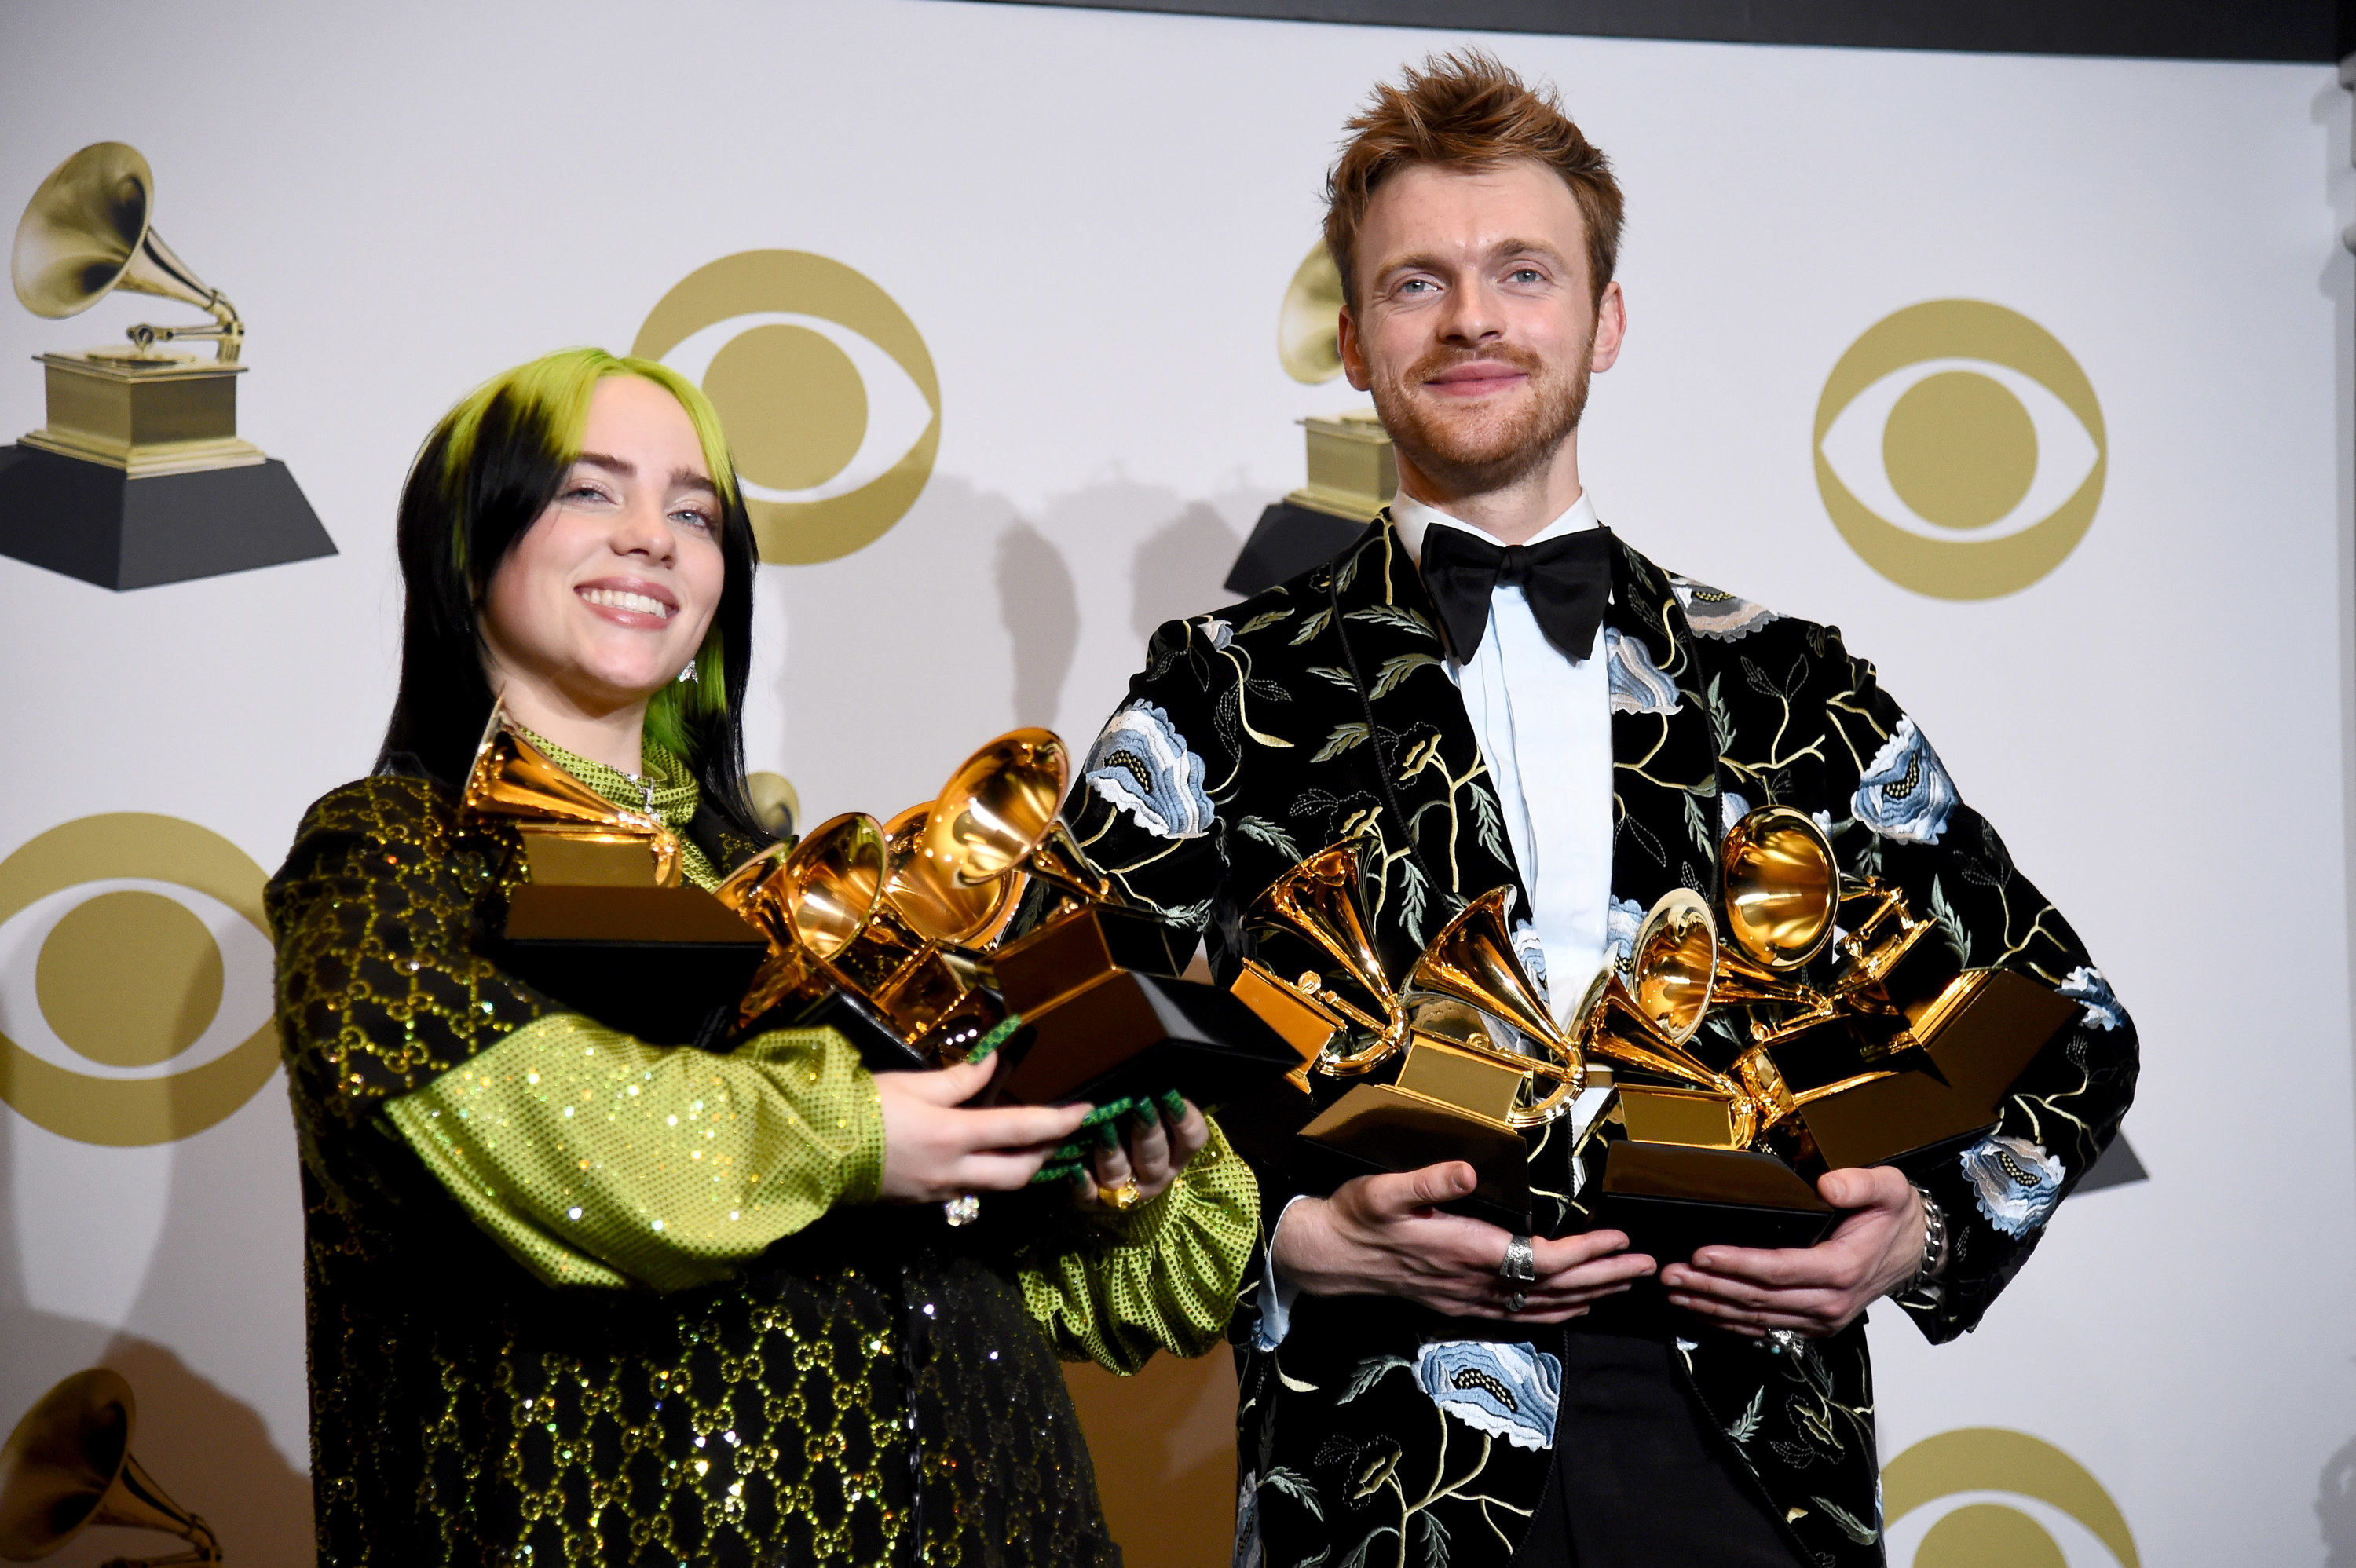 Billie Eilish and her brother cradling several Grammy's in their arms